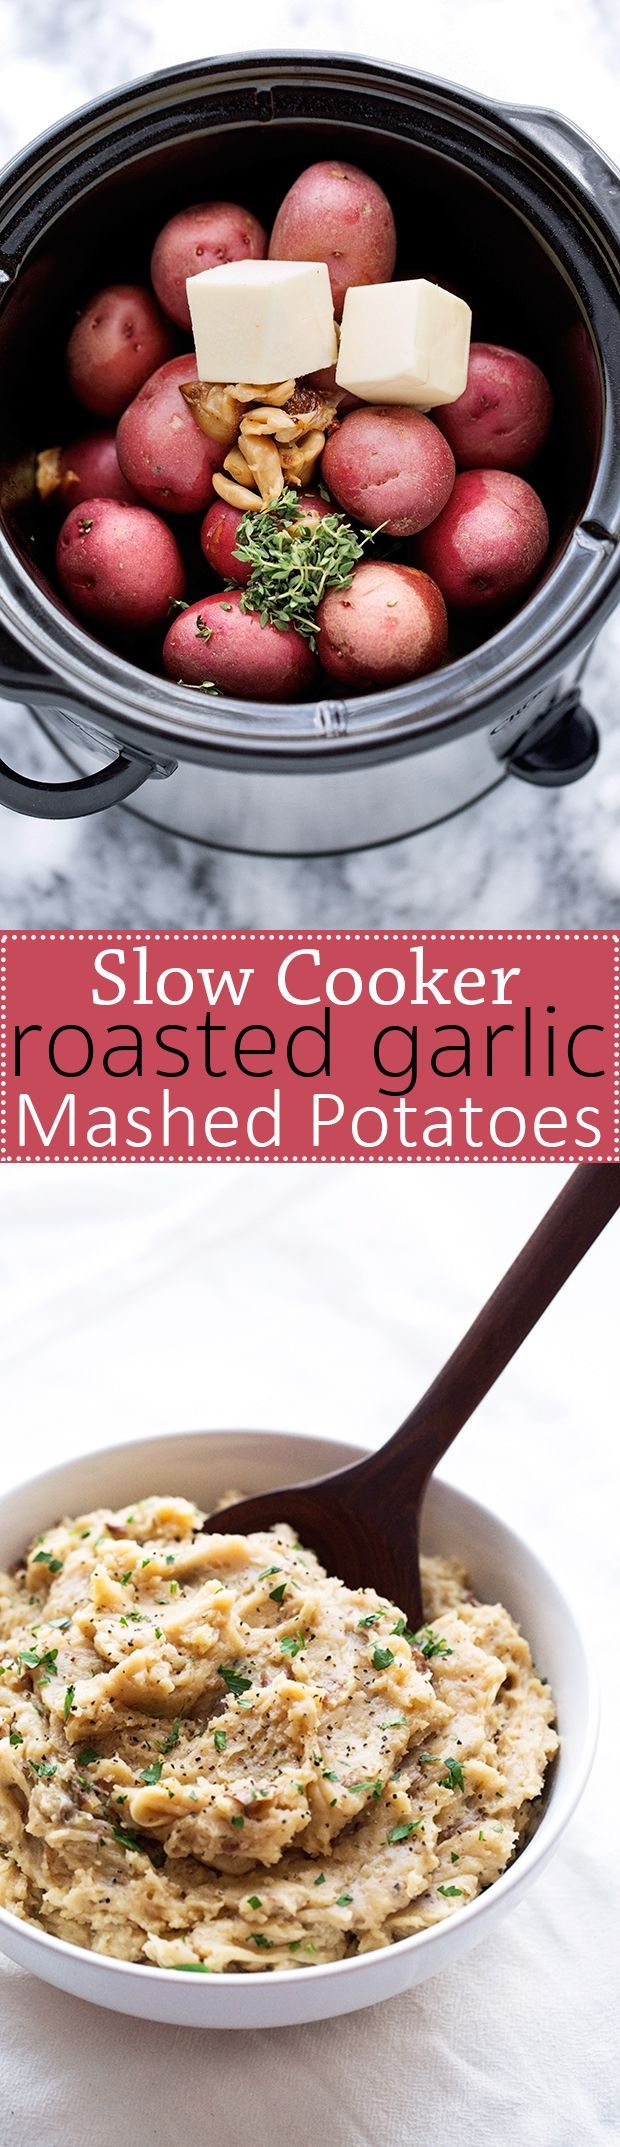 Roasted Garlic Mashed Potatoes – Learn how to make roasted garlic mashed potatoes in the slow cooker! Perfect for Thanksgiving!